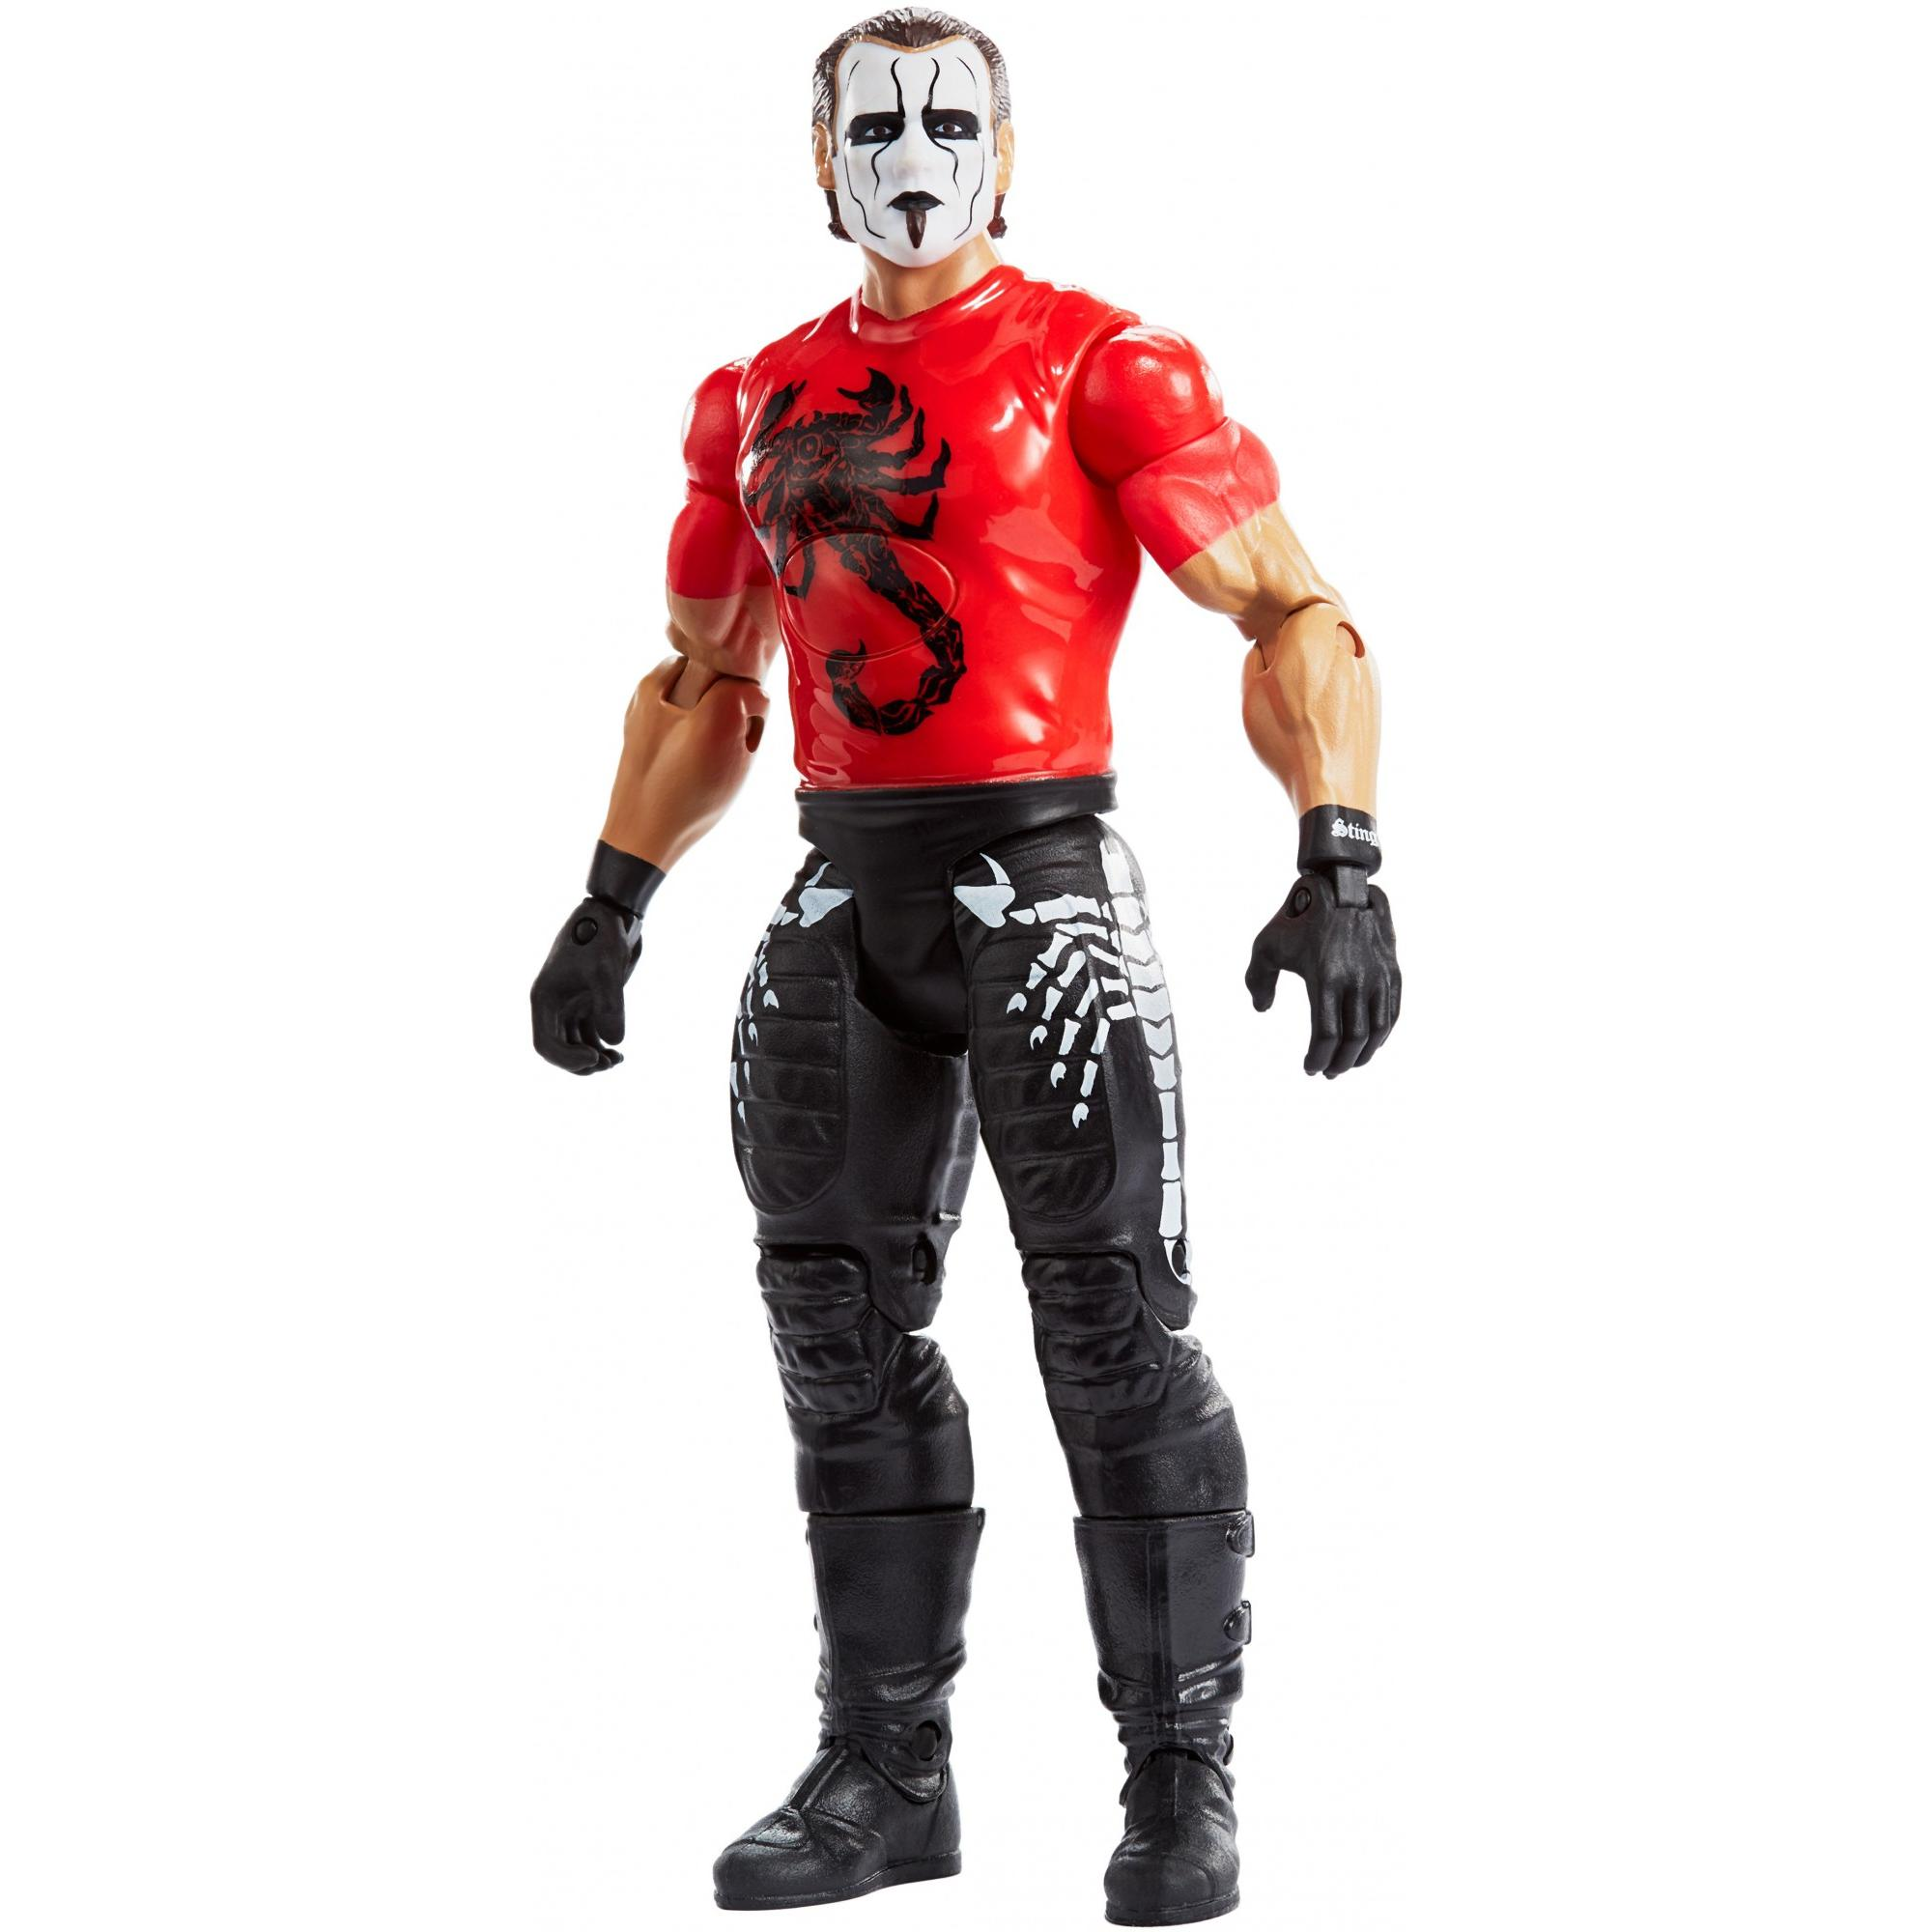 WWE Tough Talkers Total Tag Team Sting Action Figure by Mattel